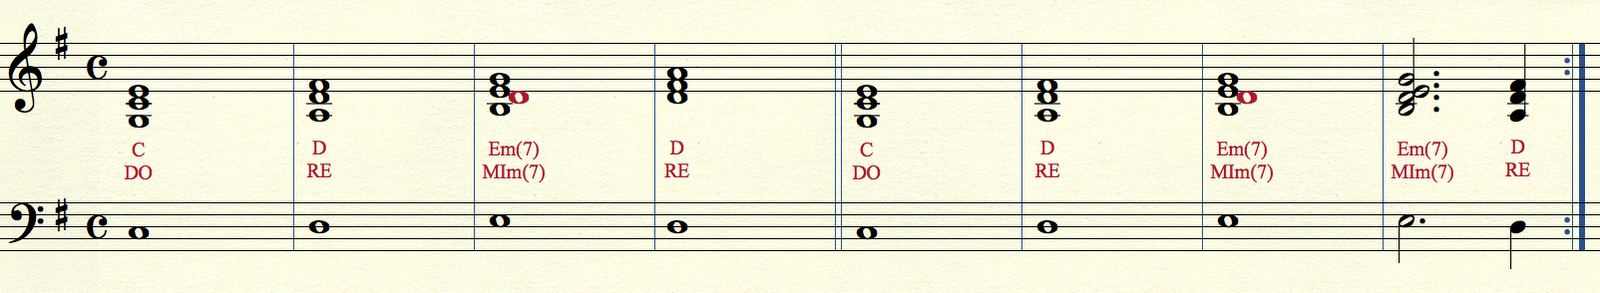 Contemporary Toto Africa Chords Composition Song Chords Images